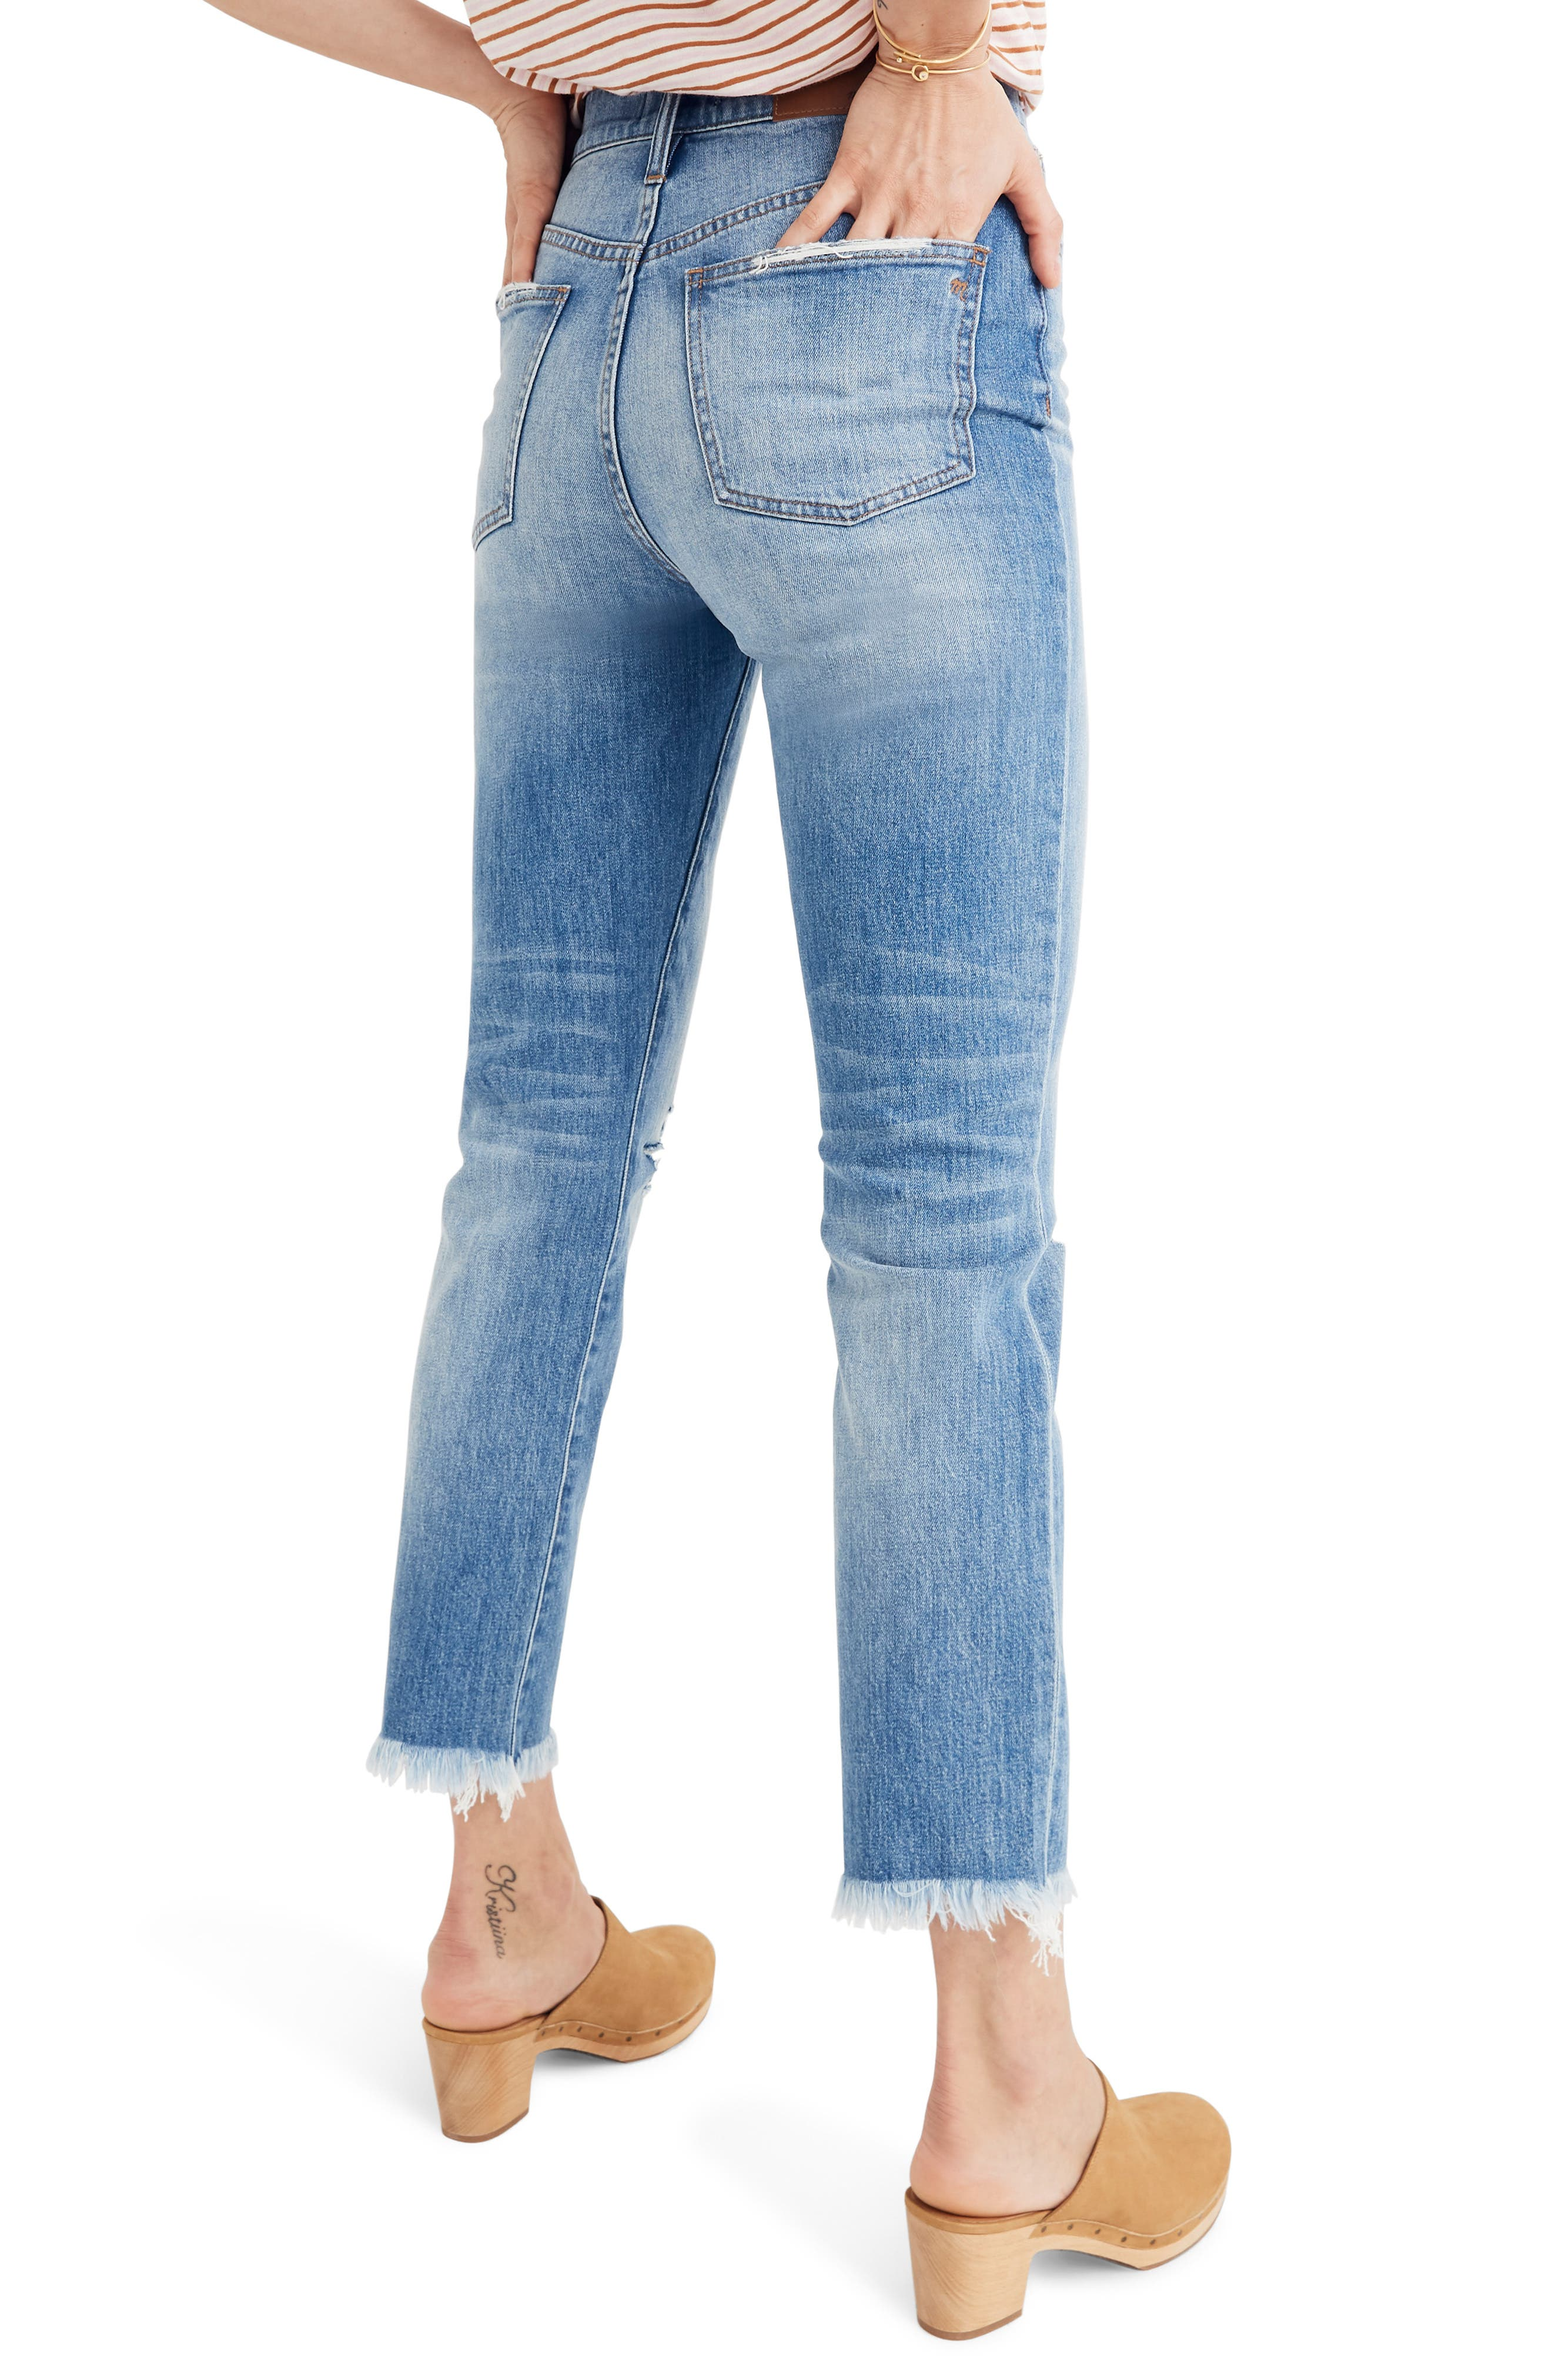 MADEWELL, The Perfect Vintage Crop High Waist Jeans, Alternate thumbnail 4, color, PARNELL WASH